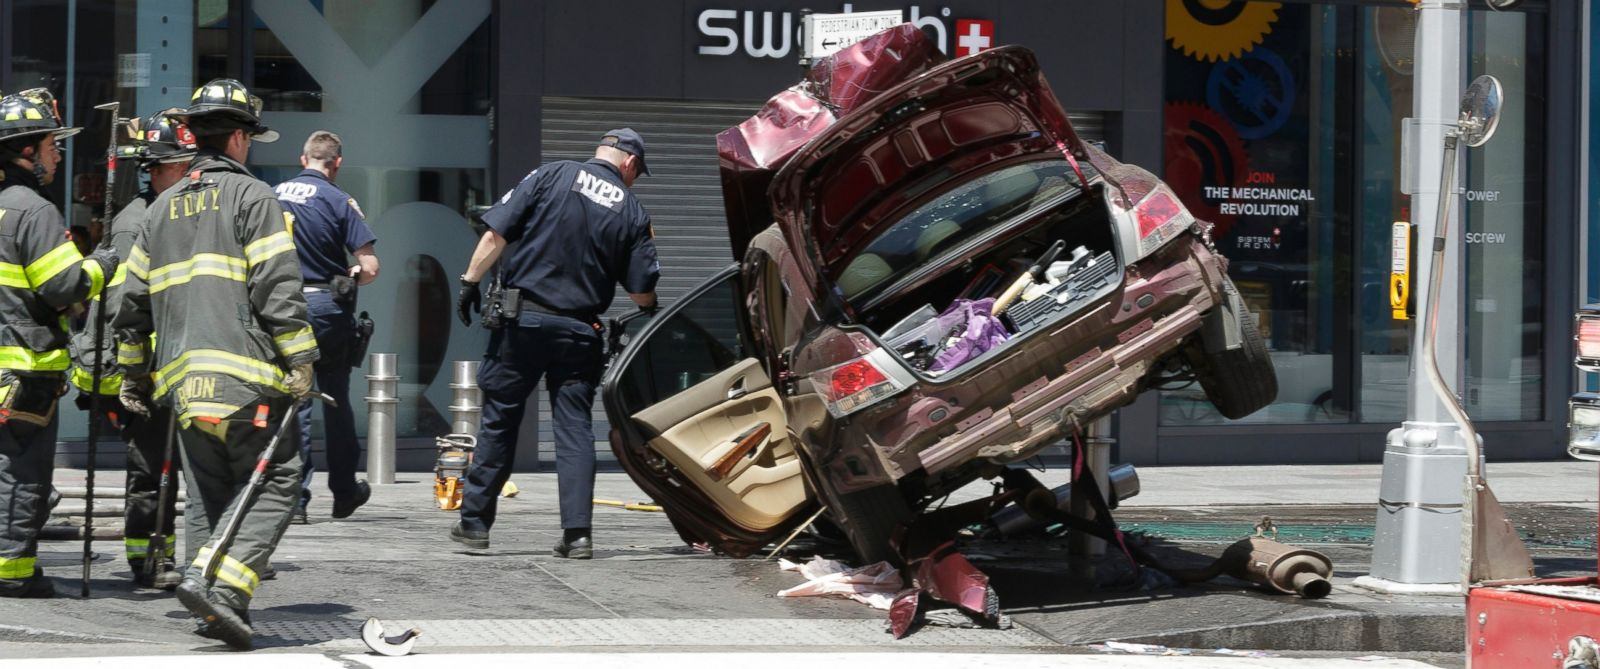 Woman Killed 22 Injured After Car Plows Into Pedestrians